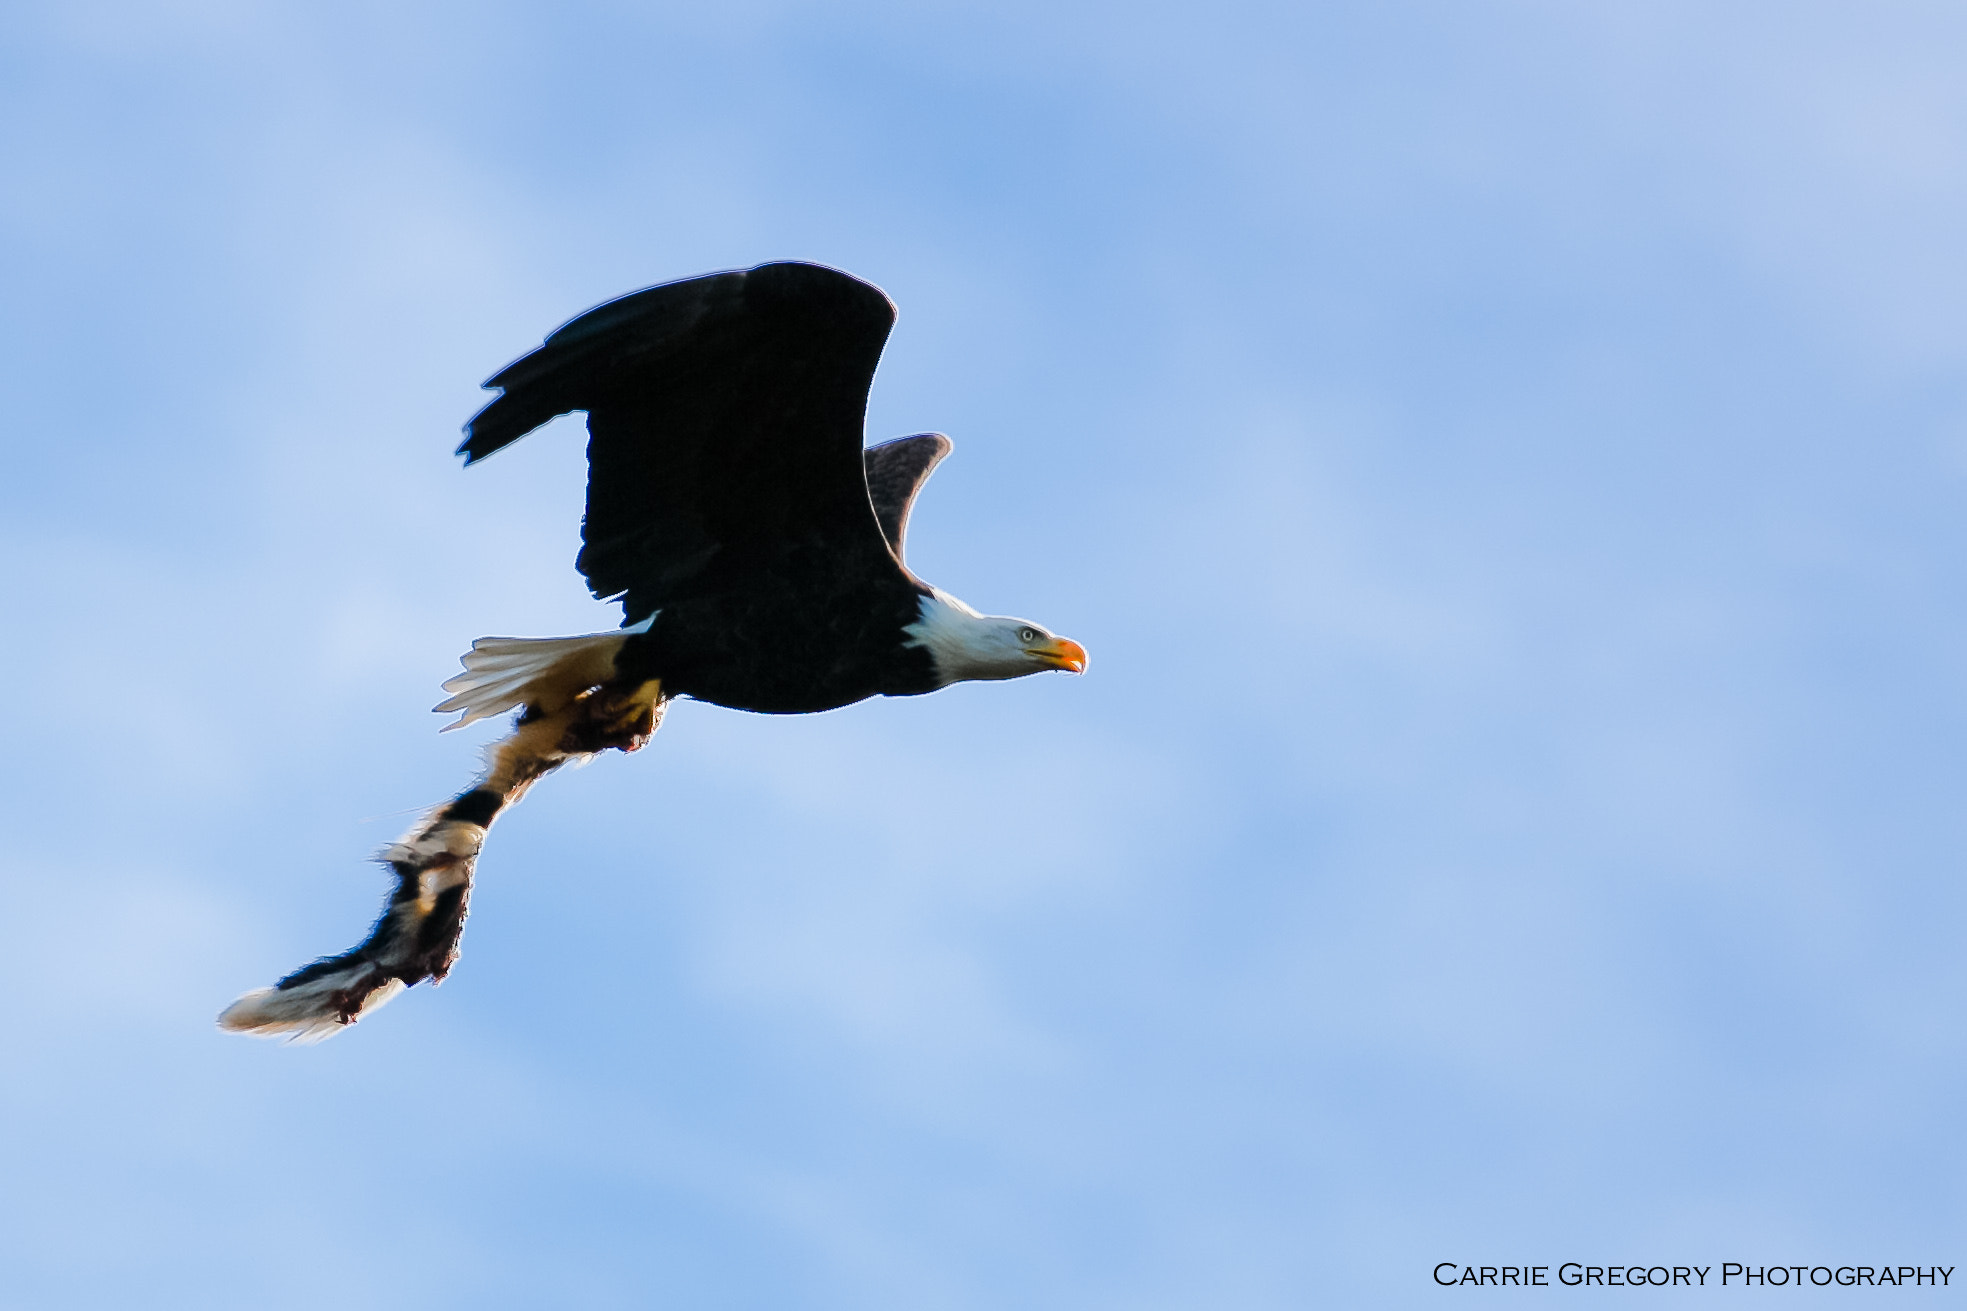 Photograph Bald Eagle #2 by Carrie Gregory on 500px